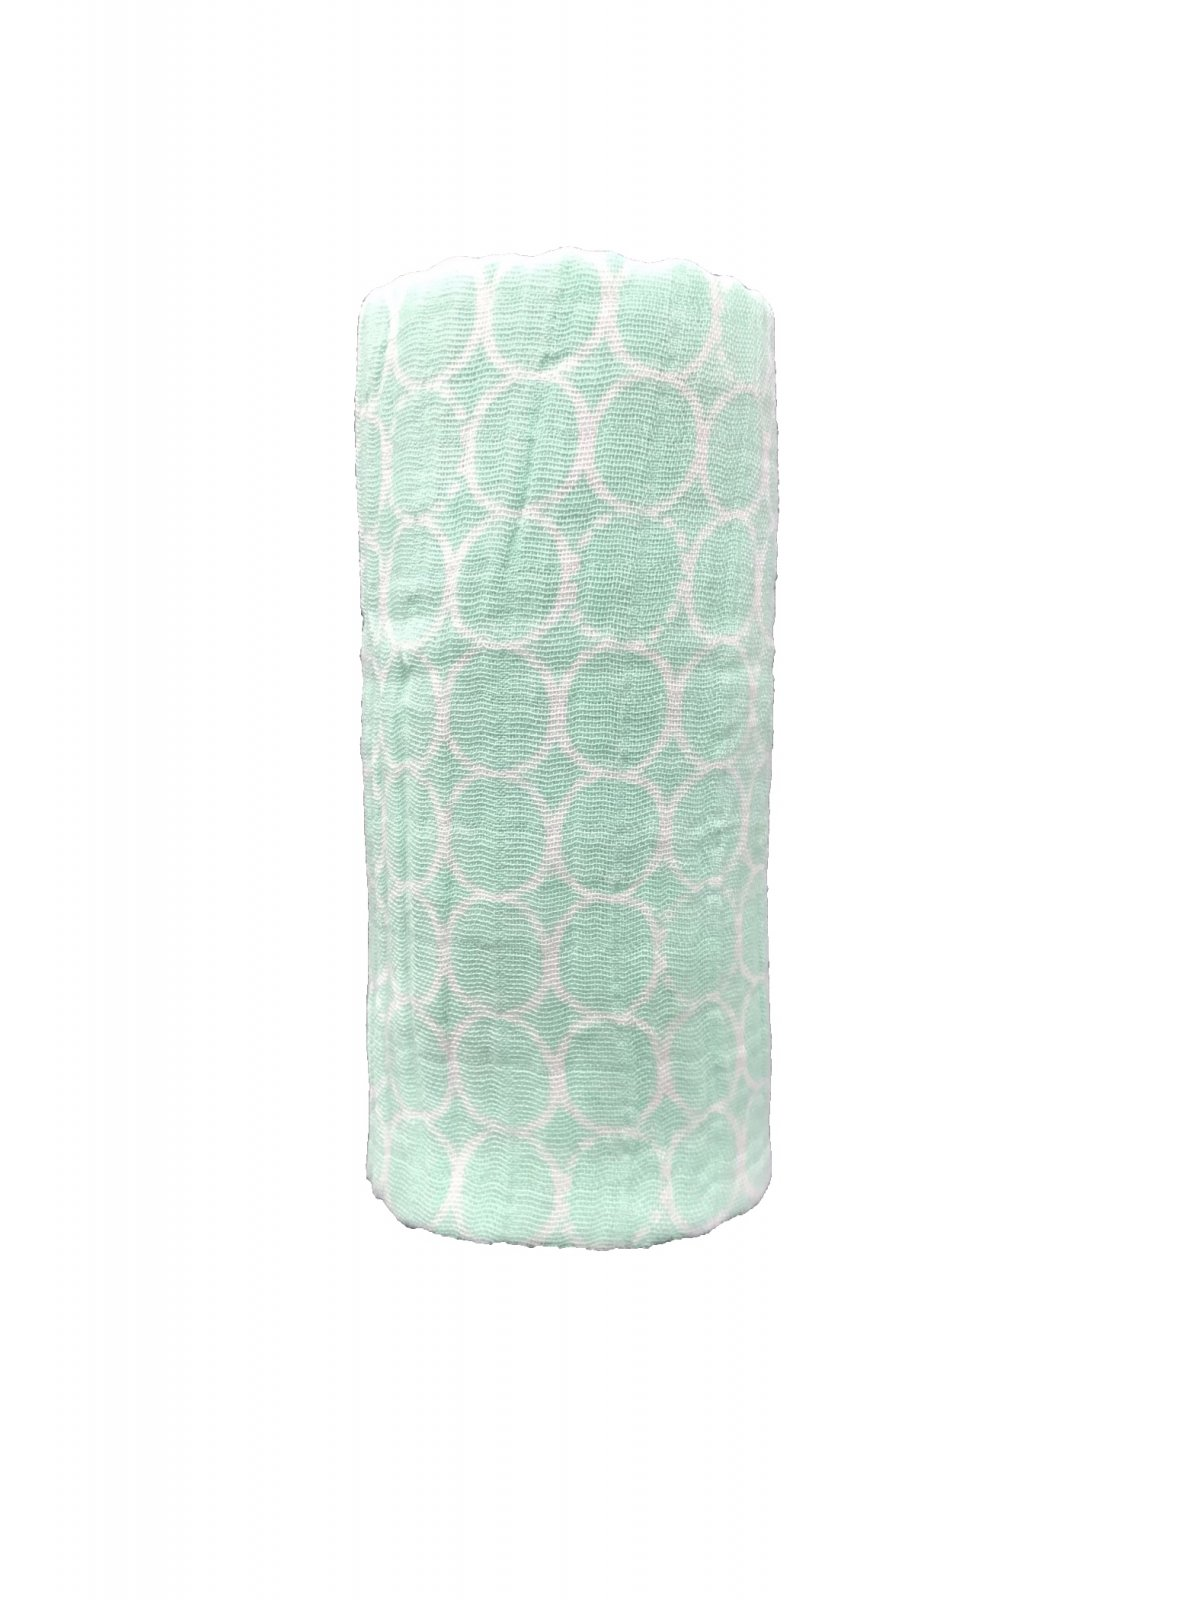 Teal Opal Swaddle